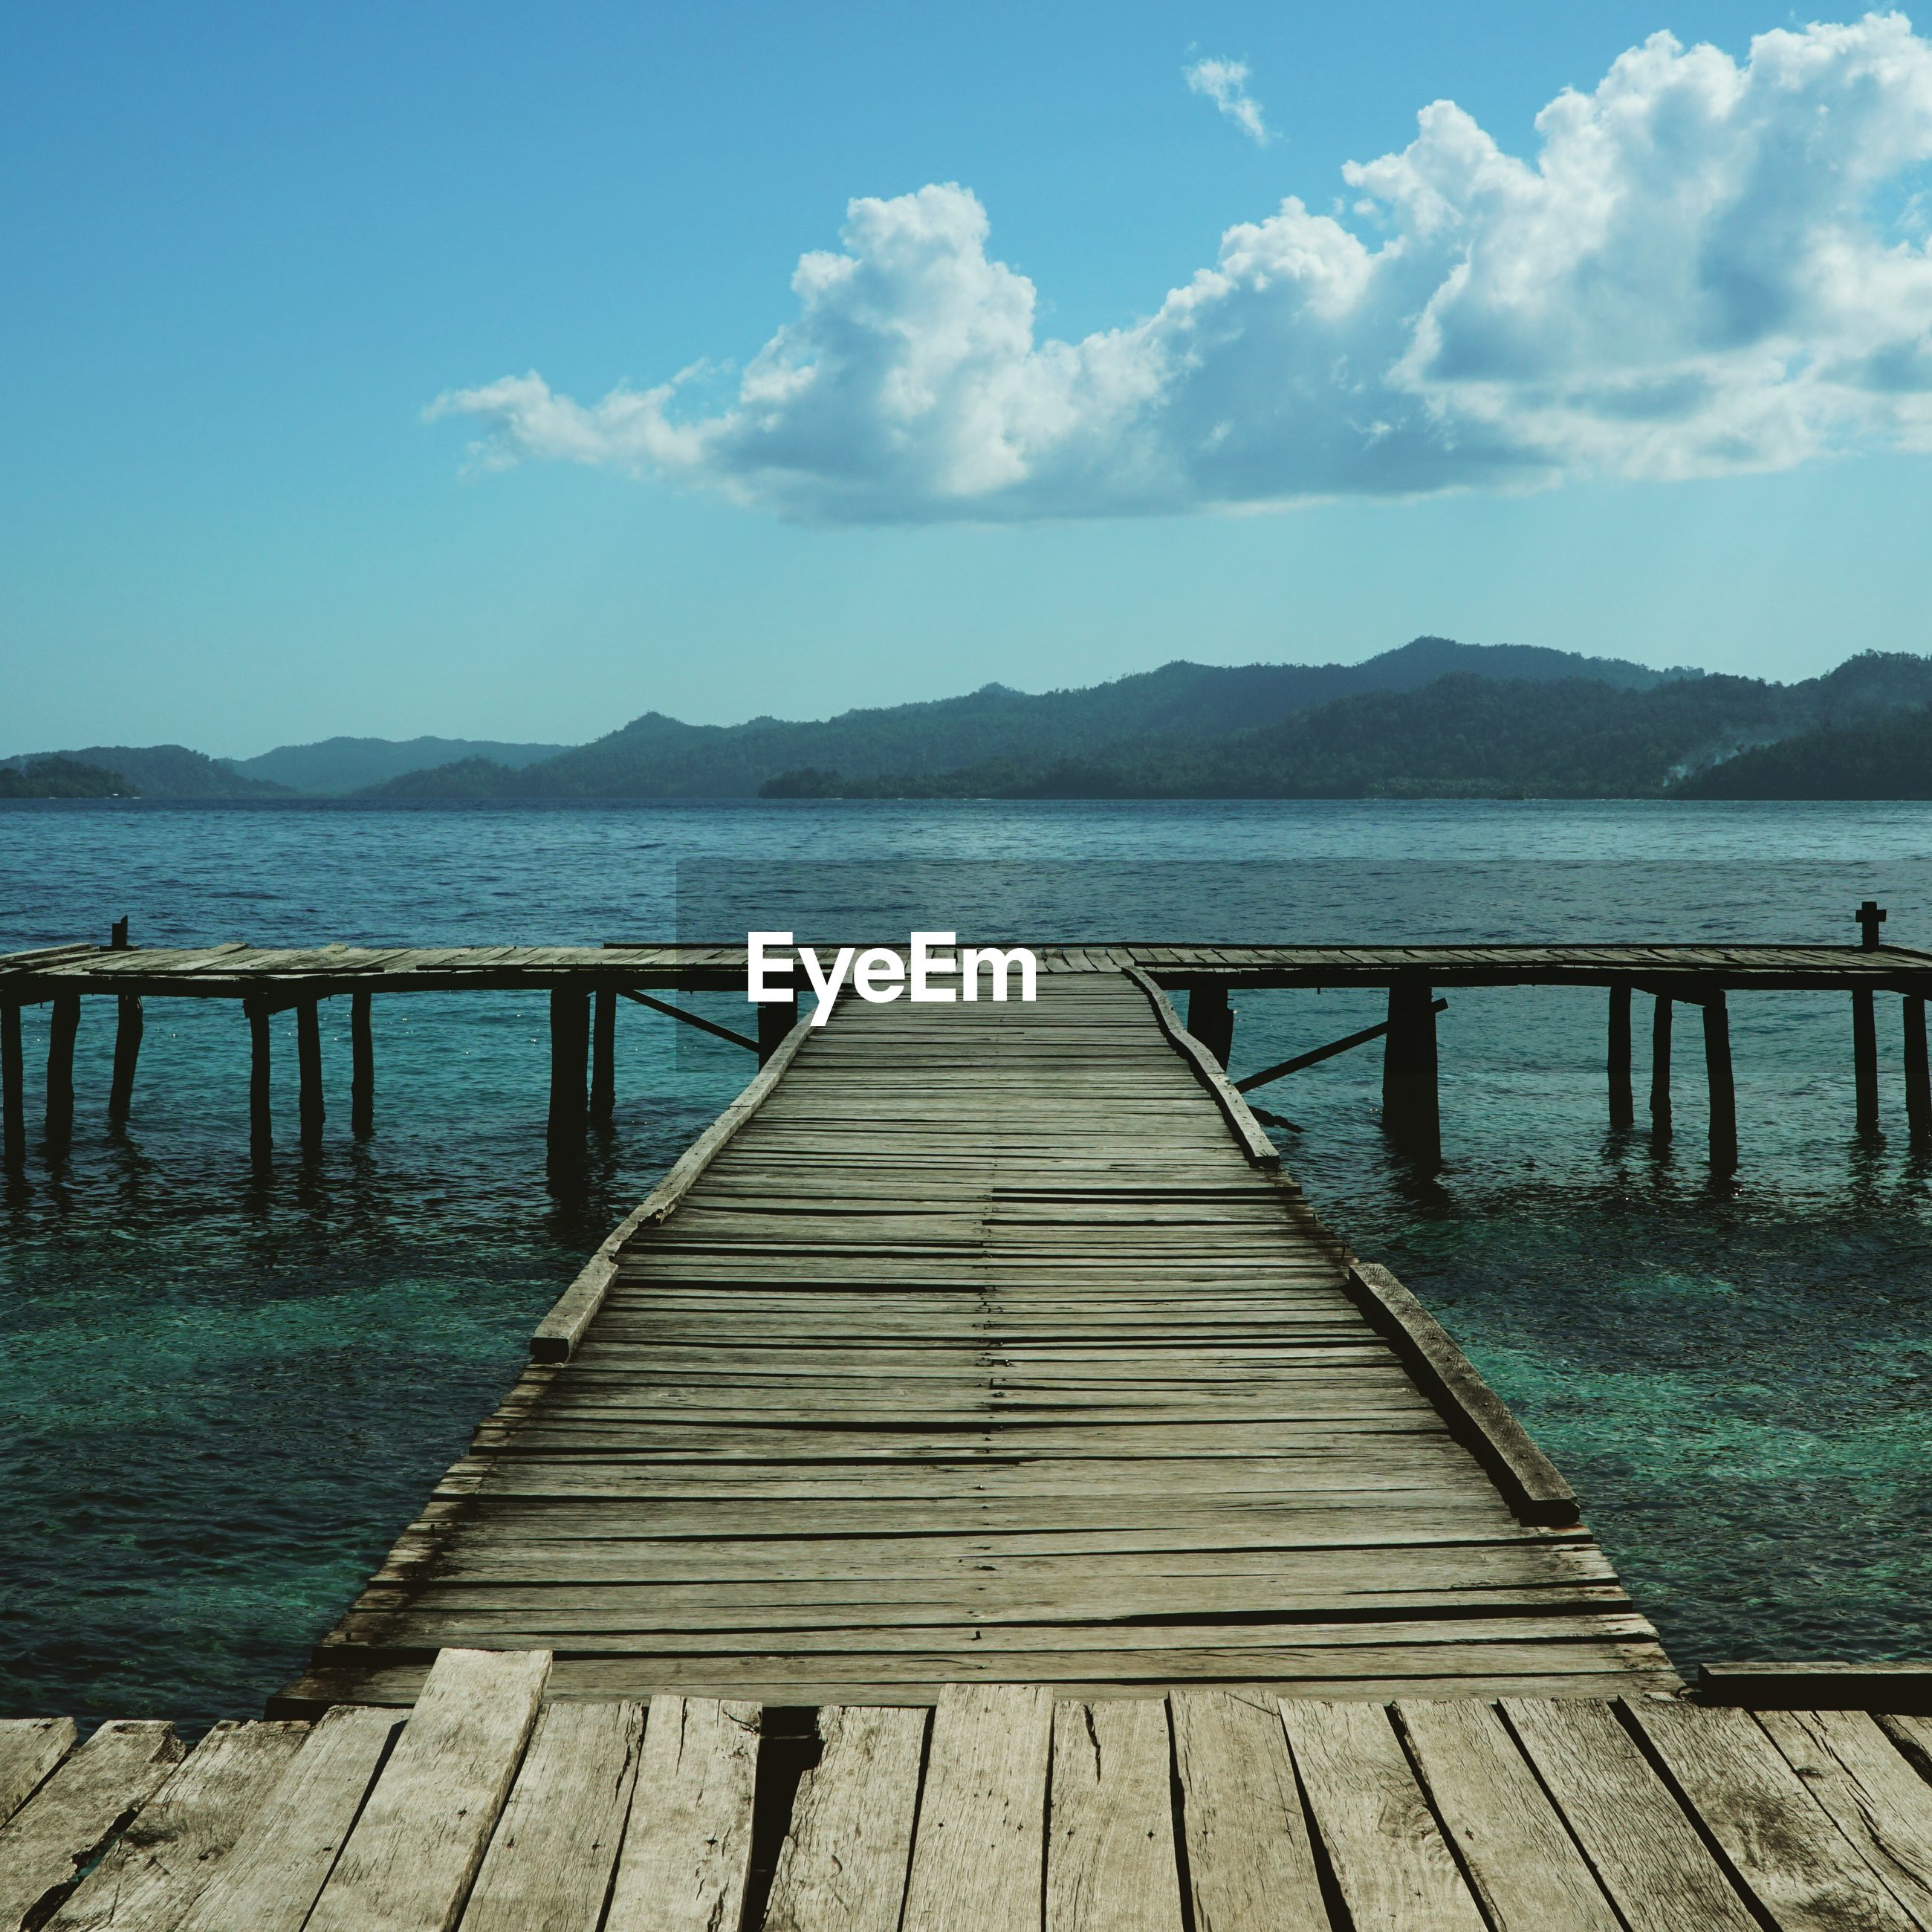 Wooden jetty leading to lake